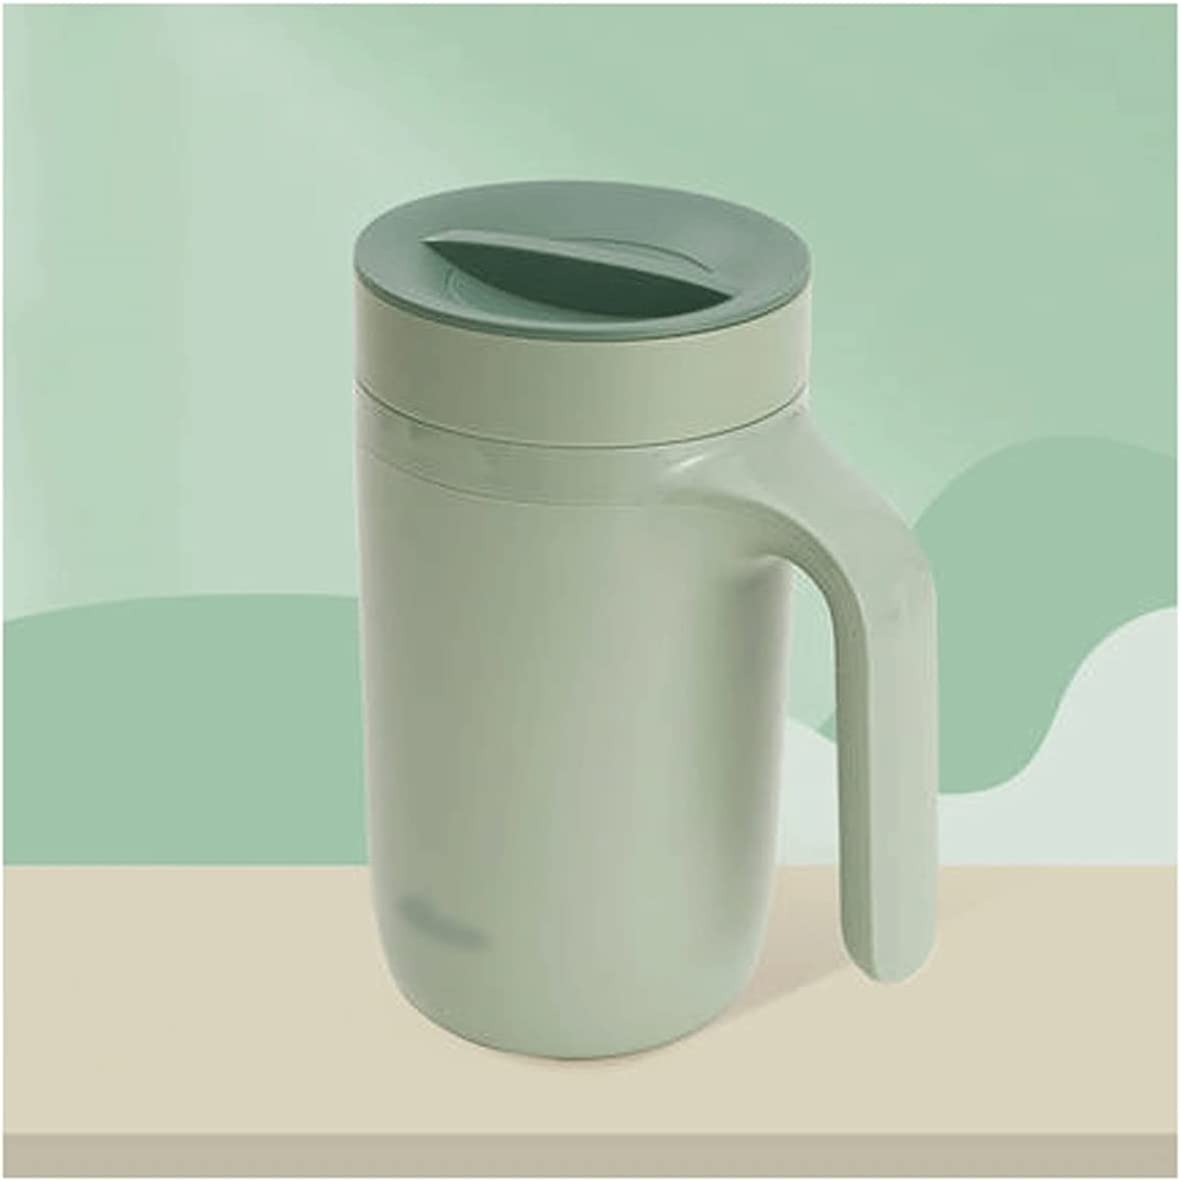 liushop Mugs Anti-scalding NEW before selling Heat Insulation Fi Large Capacity Daily bargain sale Cup